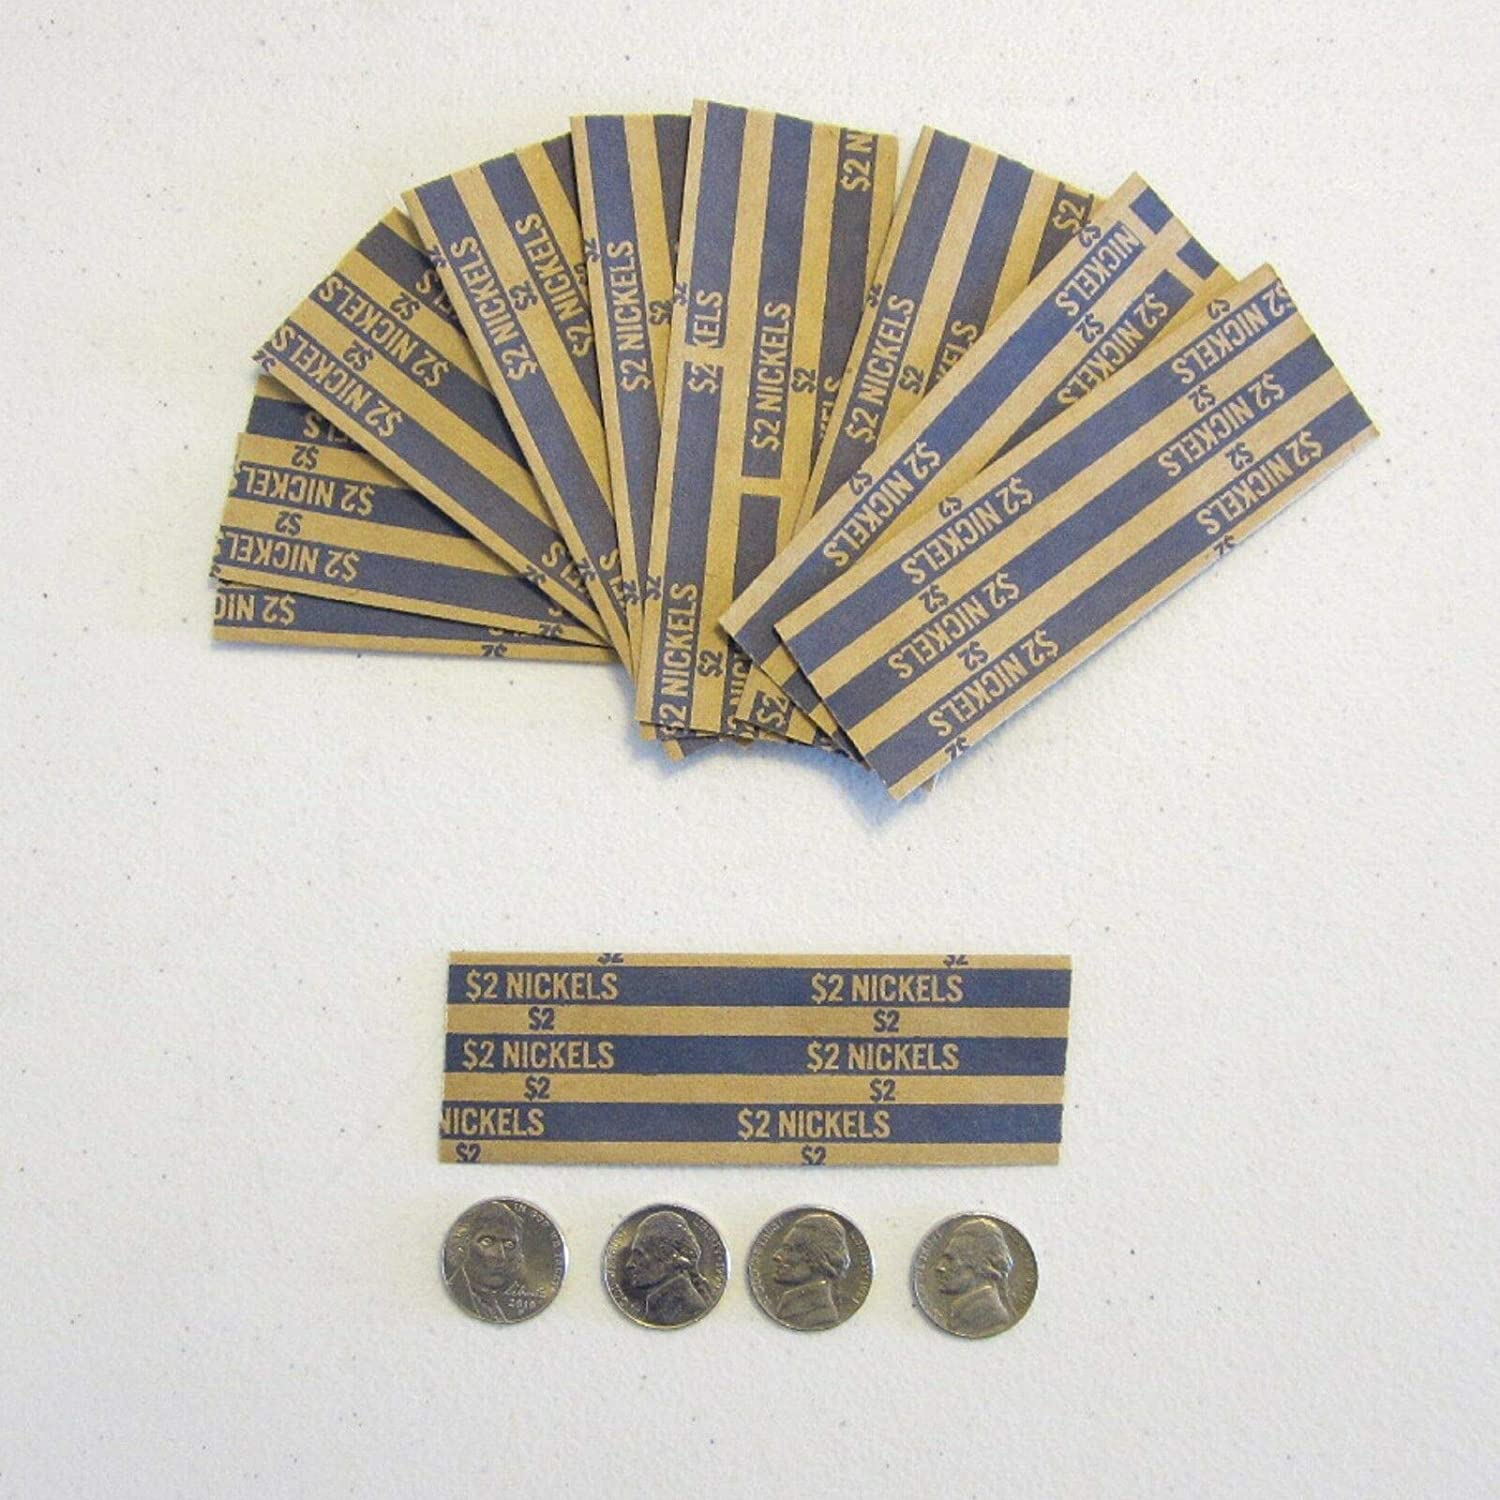 150 Coin Wrappers for Nickels Nickel Cent Free Shipping New New York Mall Wra Five Wrapper Coins